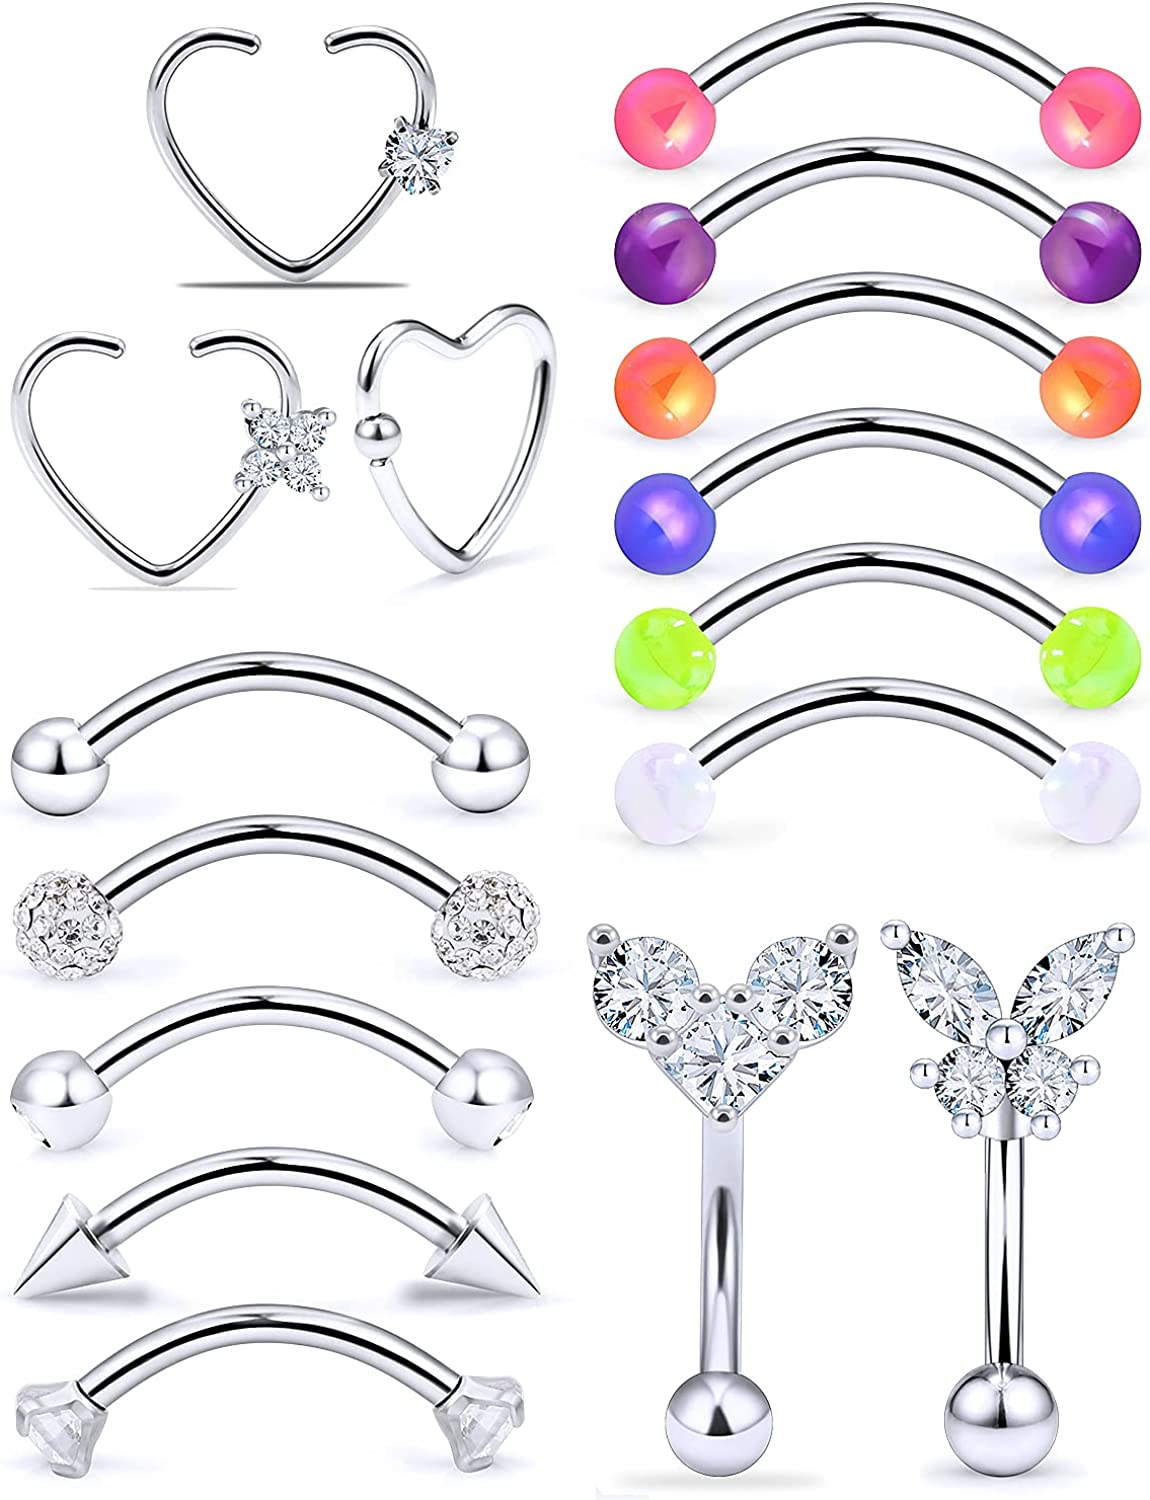 Leiainely Rook Piercing Jewelry Daith Piercing Jewelry Eyebrow Rings Daith Jewelry Surface Tragus Piercing Jewelry Eyebrow Piercing Jewelry Rook Earrings Vertical Labret Lip Jewelry Eyebrow Jewelry